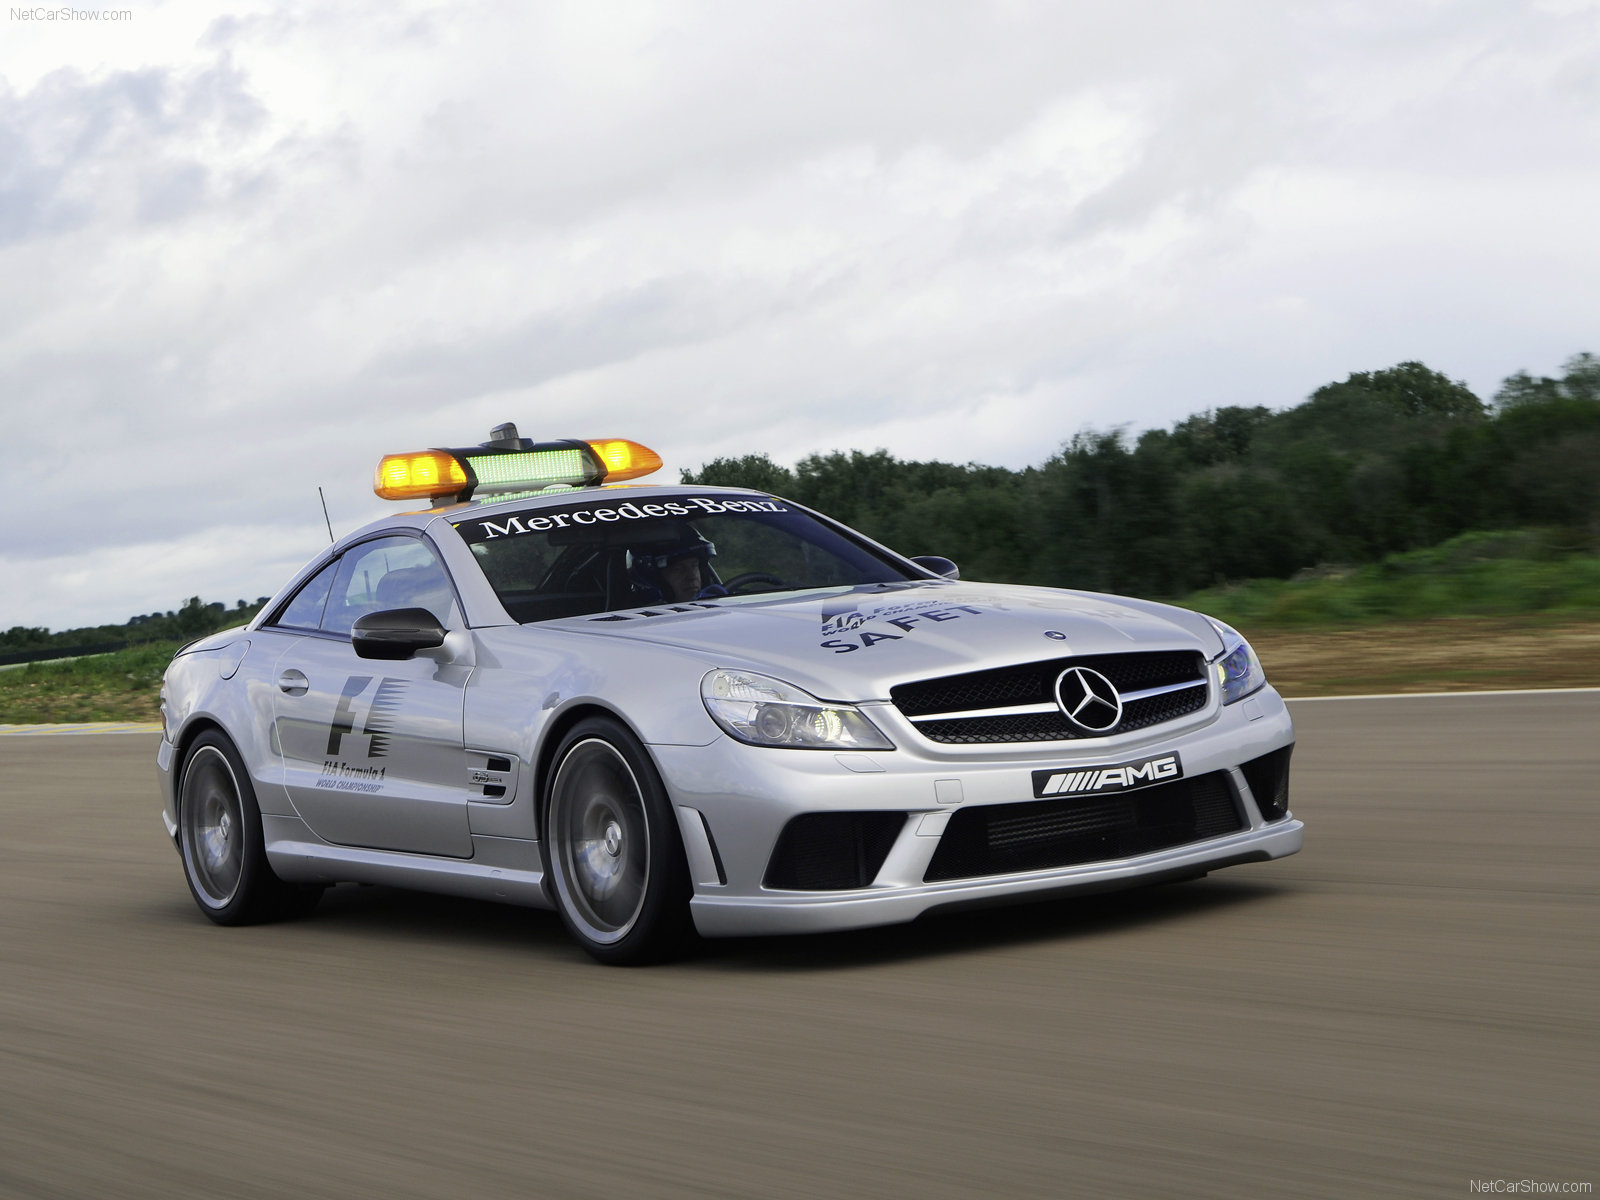 Mercedes benz sl63 amg f1 safety car picture 63071 for Mercedes benz f1